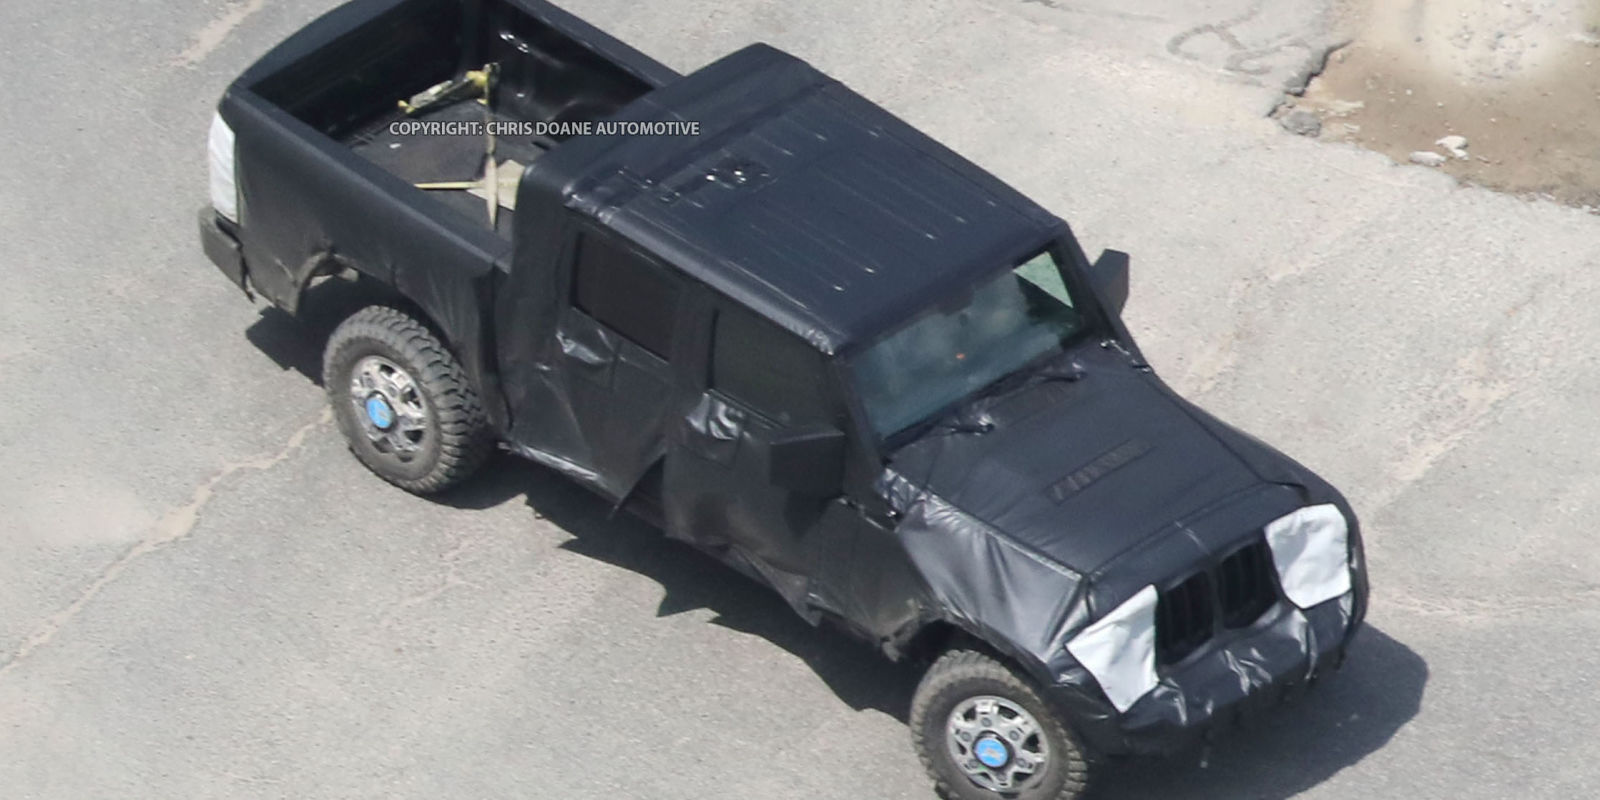 The Jeep Wrangler Pickup Will Debut in Mid-2018, Trackhawk in 2017